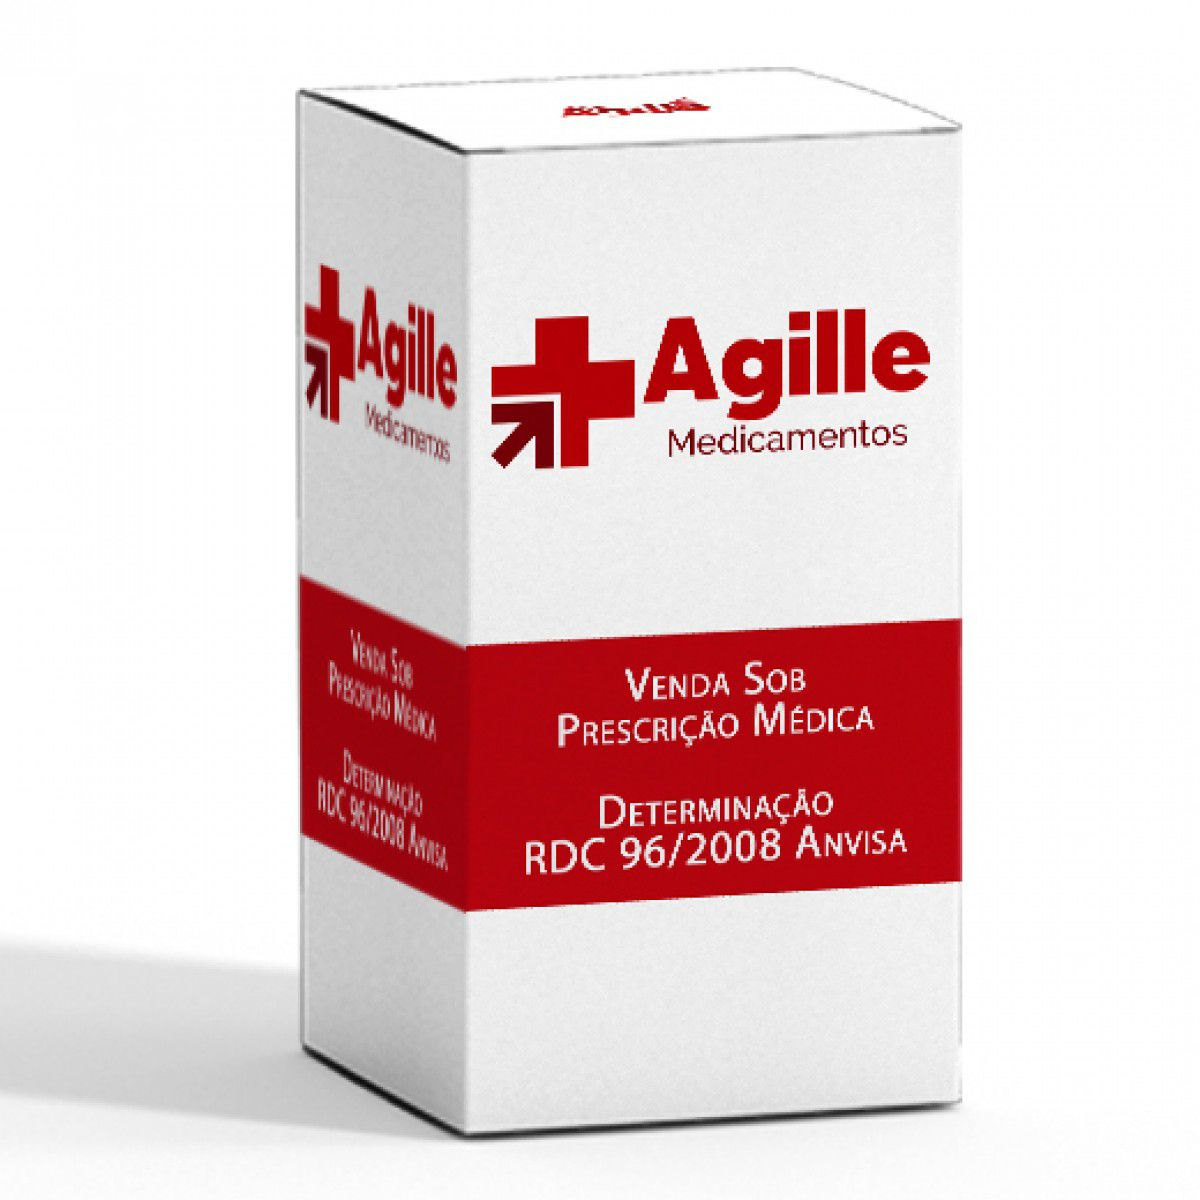 MYFORTIC 180mg cx 120 comp rev  - Agille Speciality